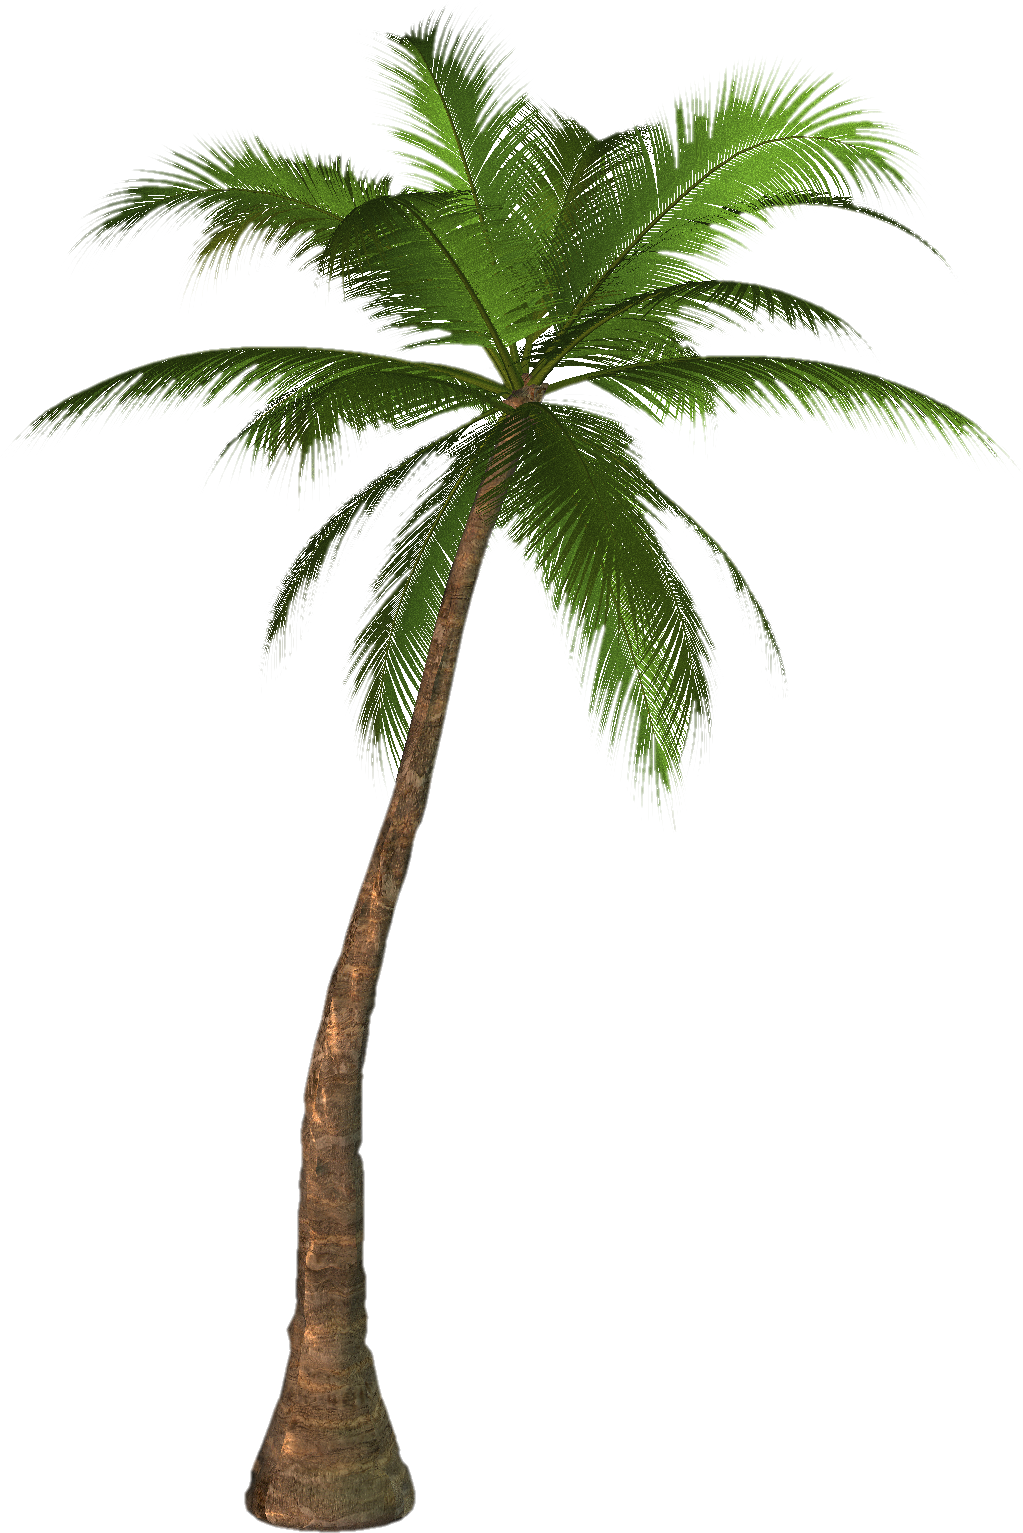 Dead Palm Tree Png - Image result for palm tree | FreeLance Research | Palm tree clip ...